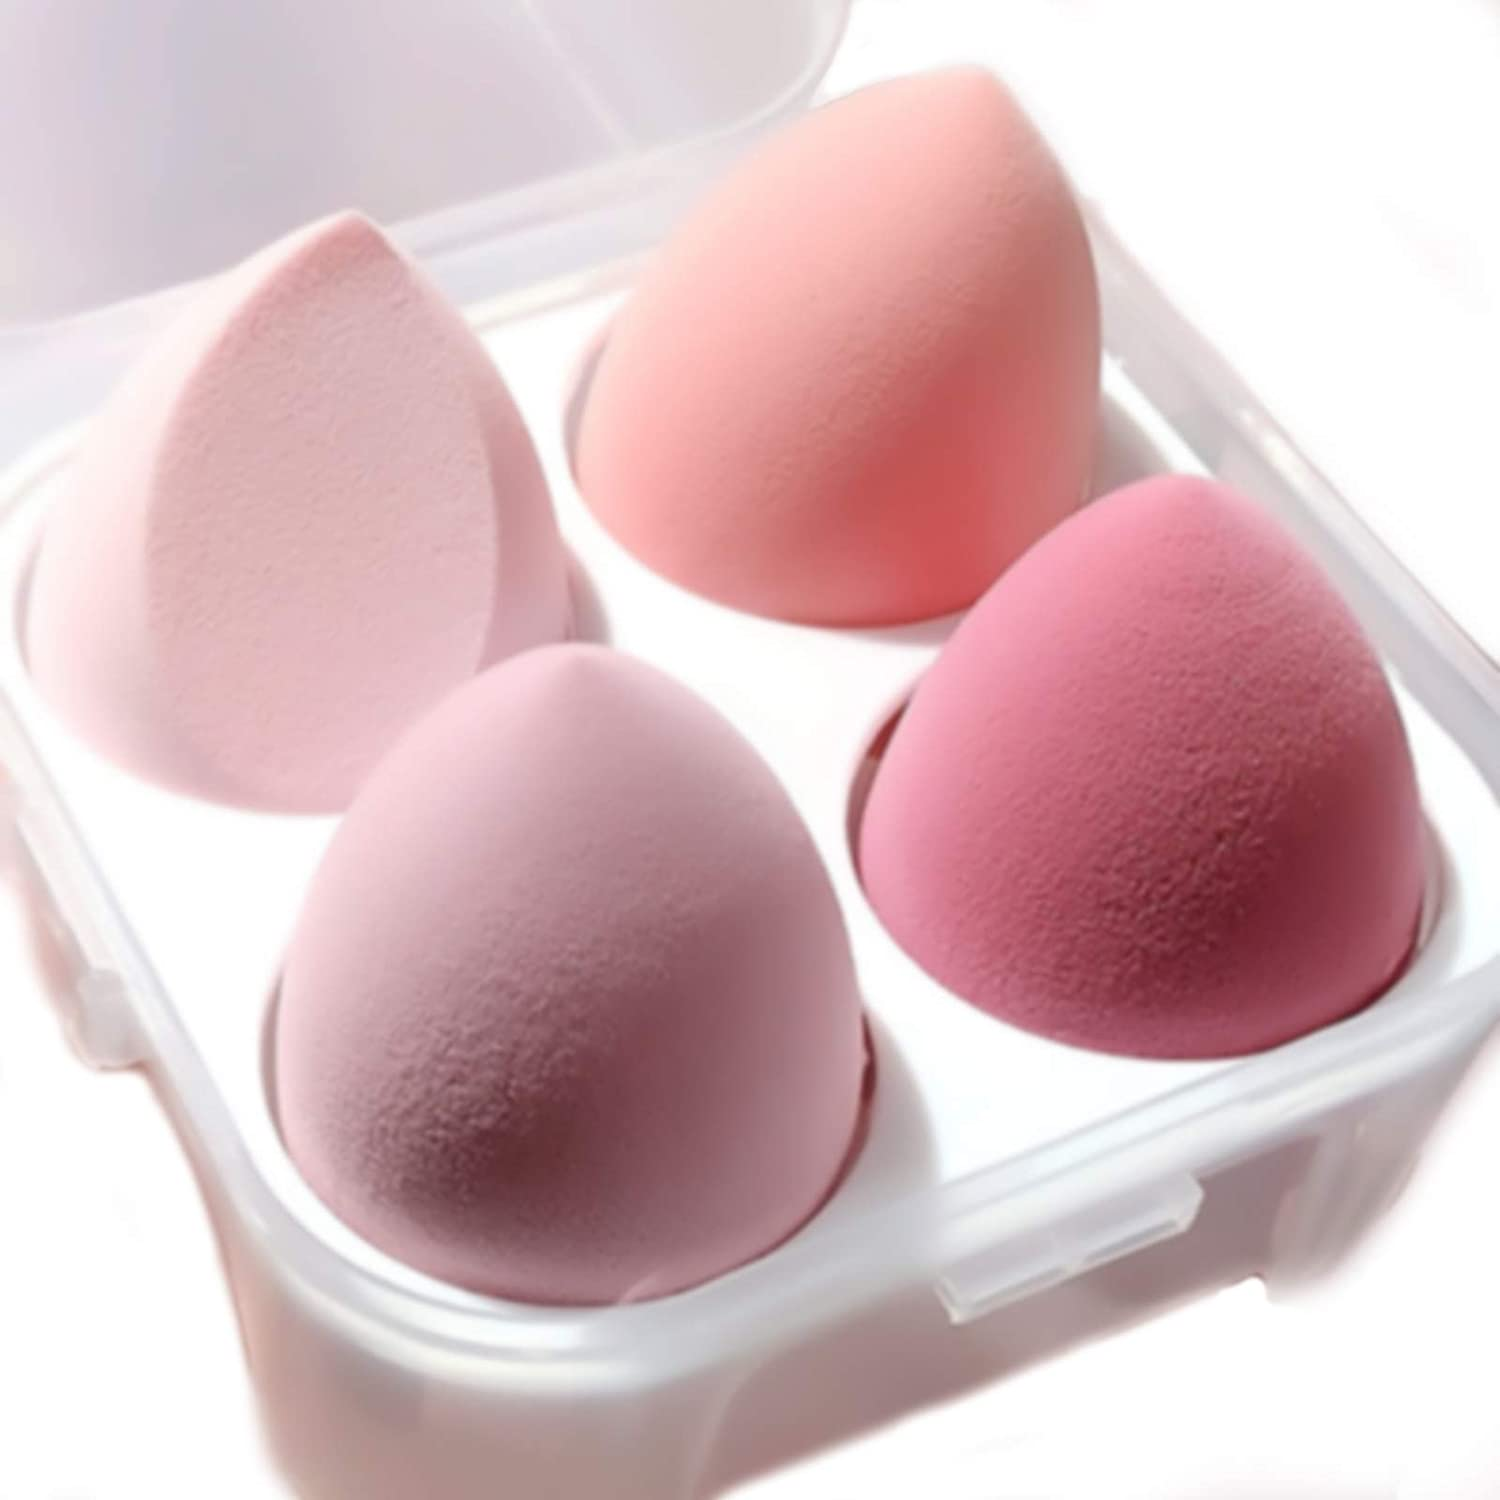 FIFIGO Makeup Sponge Set Blender Beauty Foundation Blending Sponge, Flawless for Liquid, Cream, and Powder, Multi-colored Makeup Sponges,Dry And Wet Use 3D Beauty Egg for Make Up. 4 Pcs